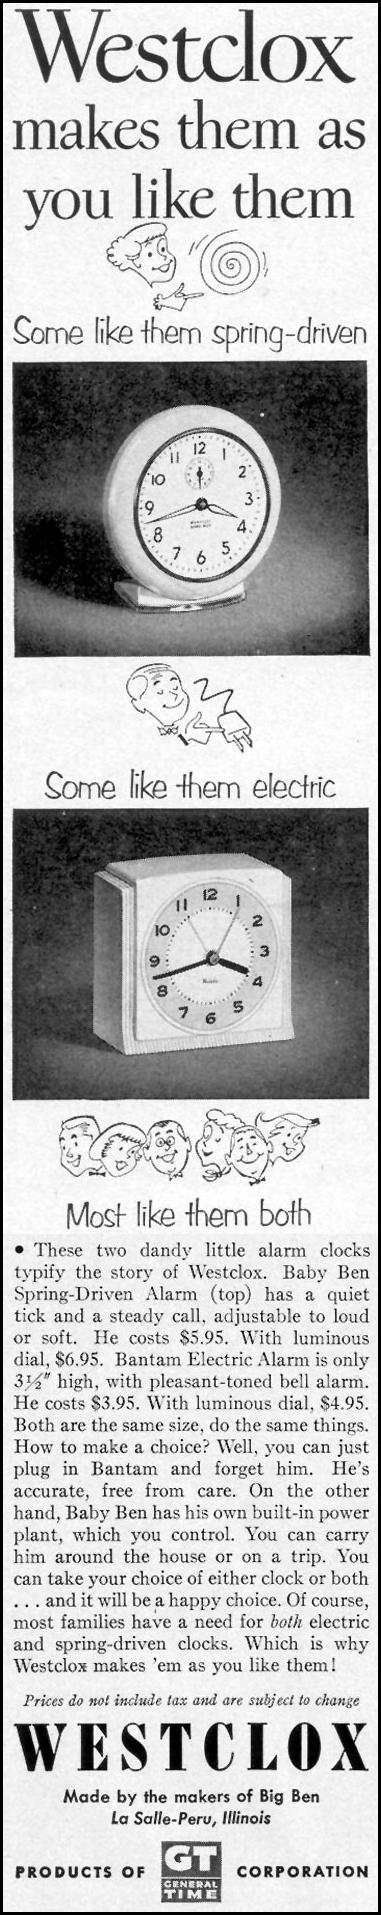 WESTCLOX ELECTRIC CLOCKS LIFE 09/07/1953 p. 104